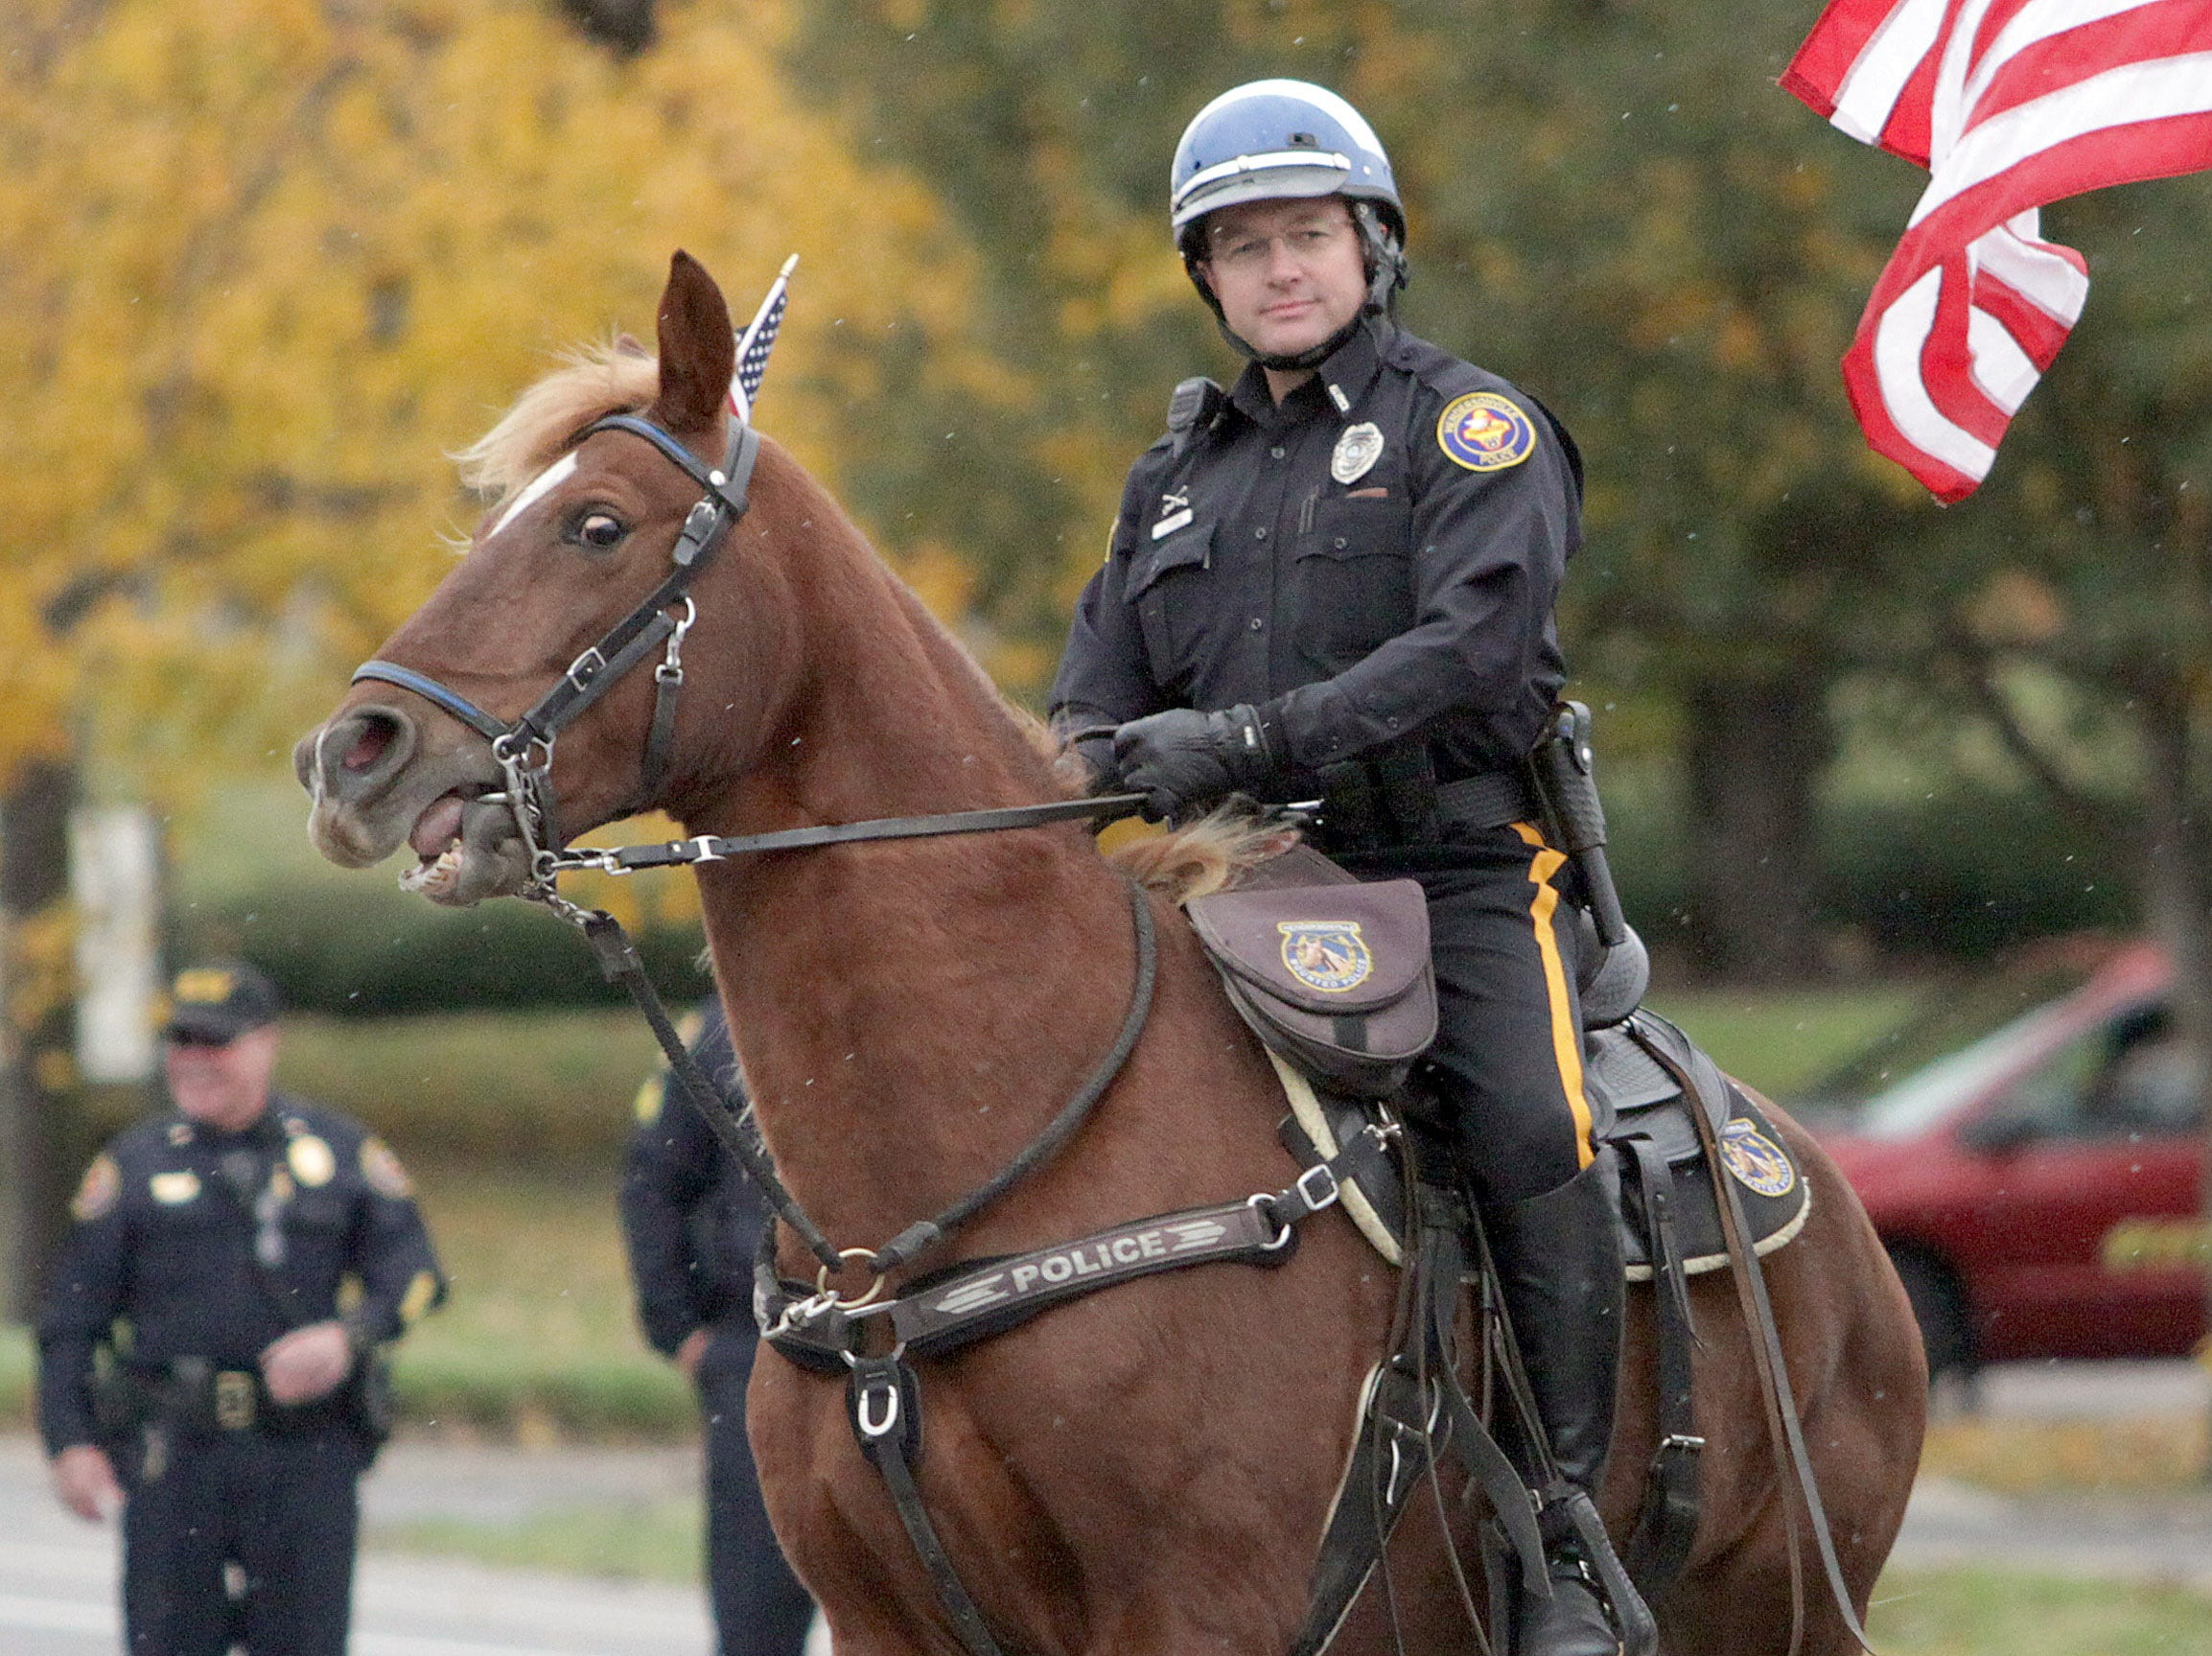 A Mounted Officer rides in the Veterans Day Parade in Hendersonville, TN on Sunday, November 3, 2018.